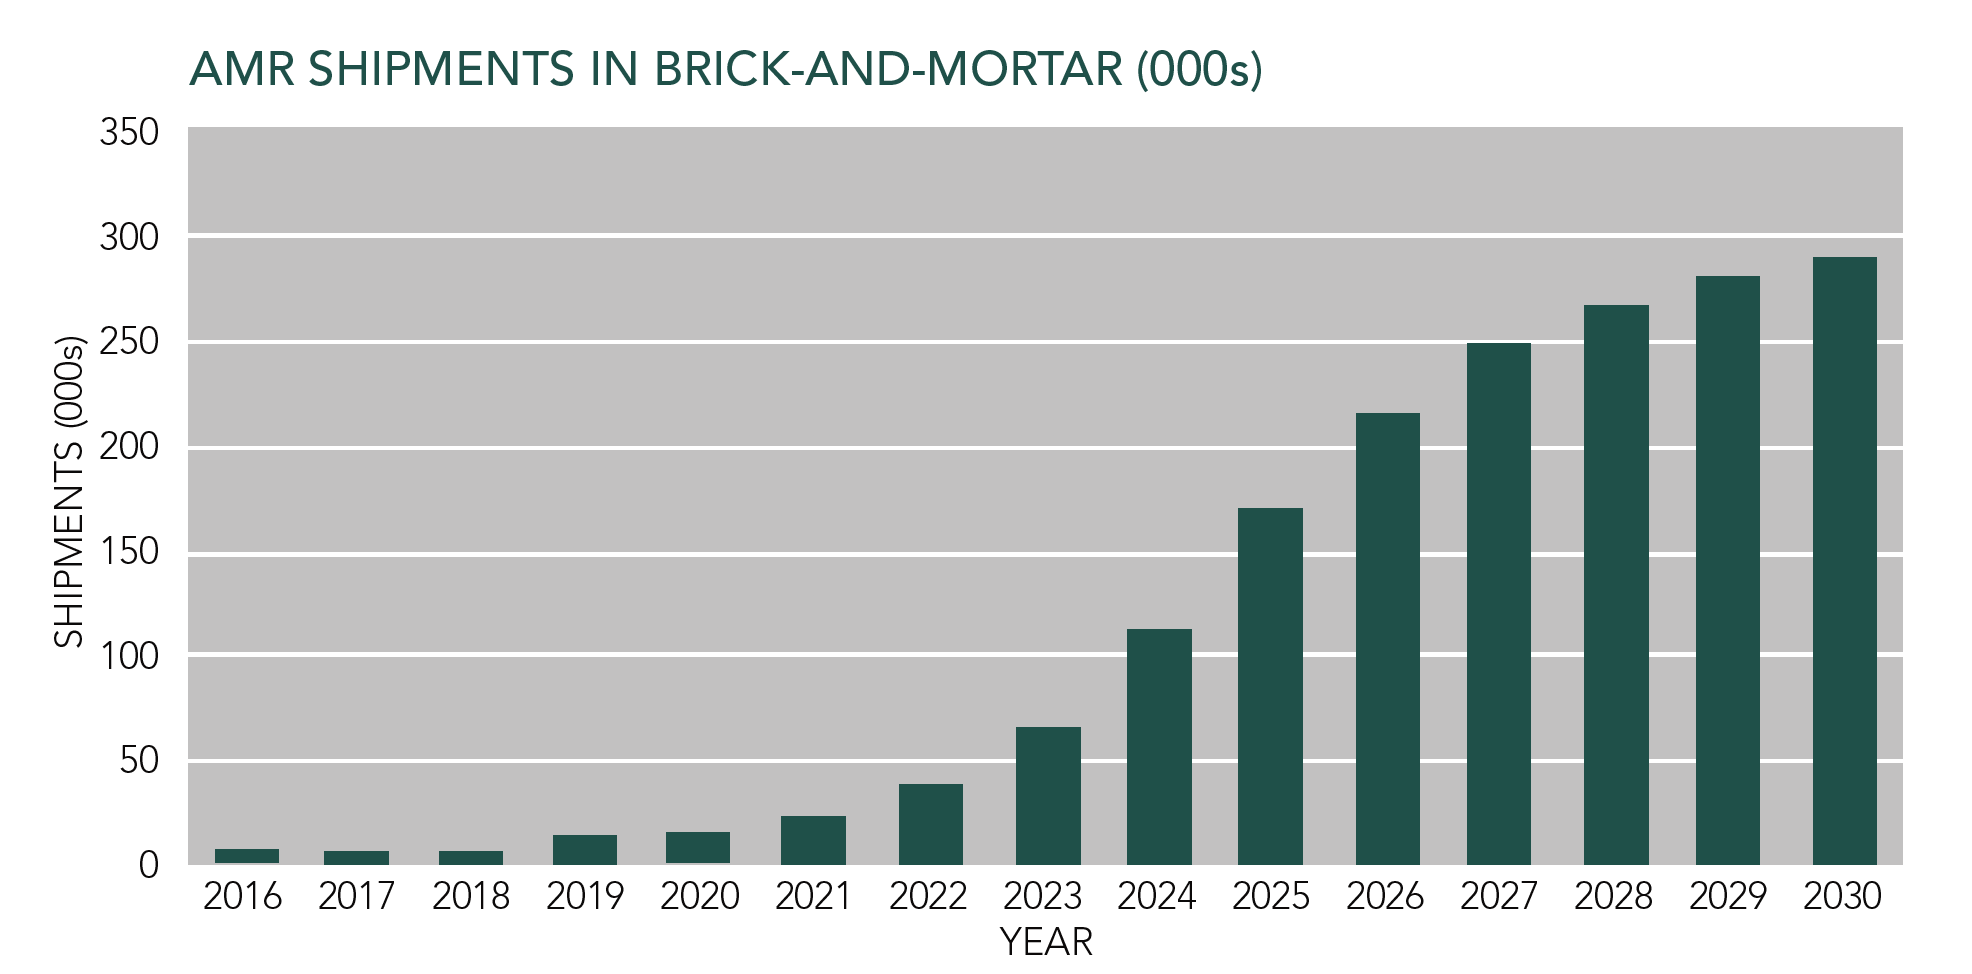 AMR Shipments in Brick-and-Mortar (000s)